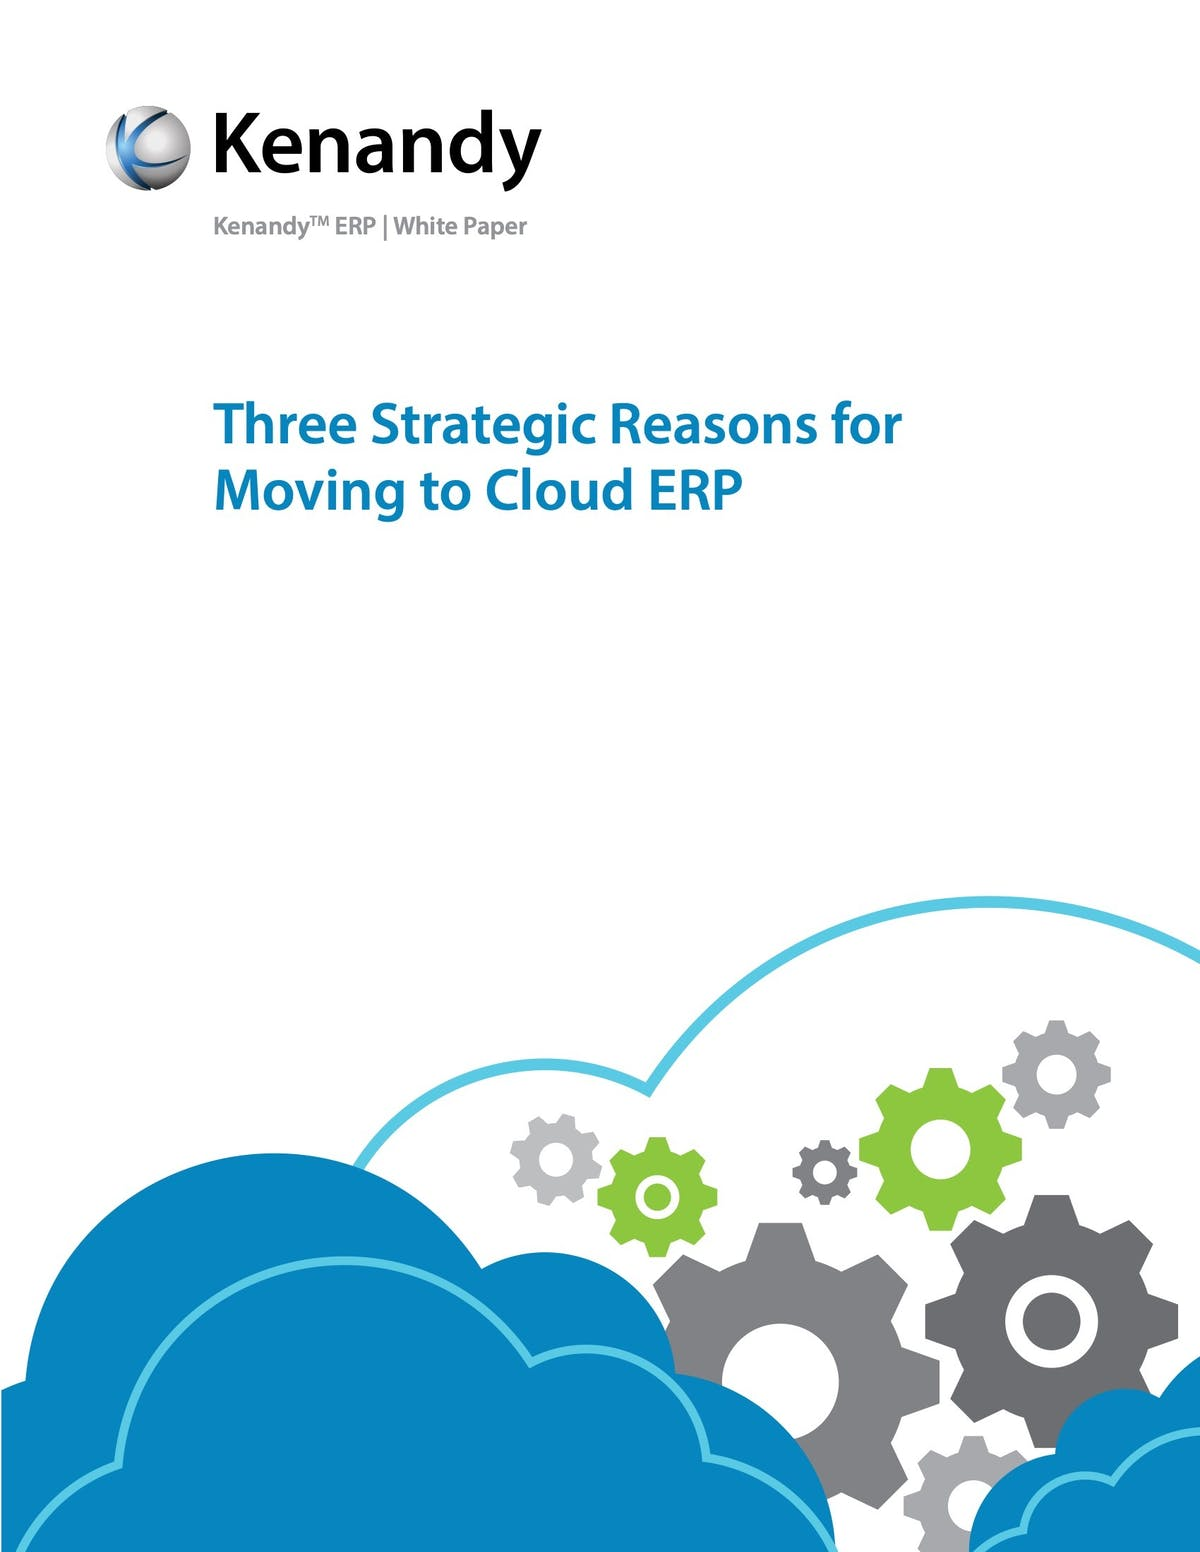 Kenandy ERP White Paper - Three Strategic Reasons for Moving to Cloud ERP